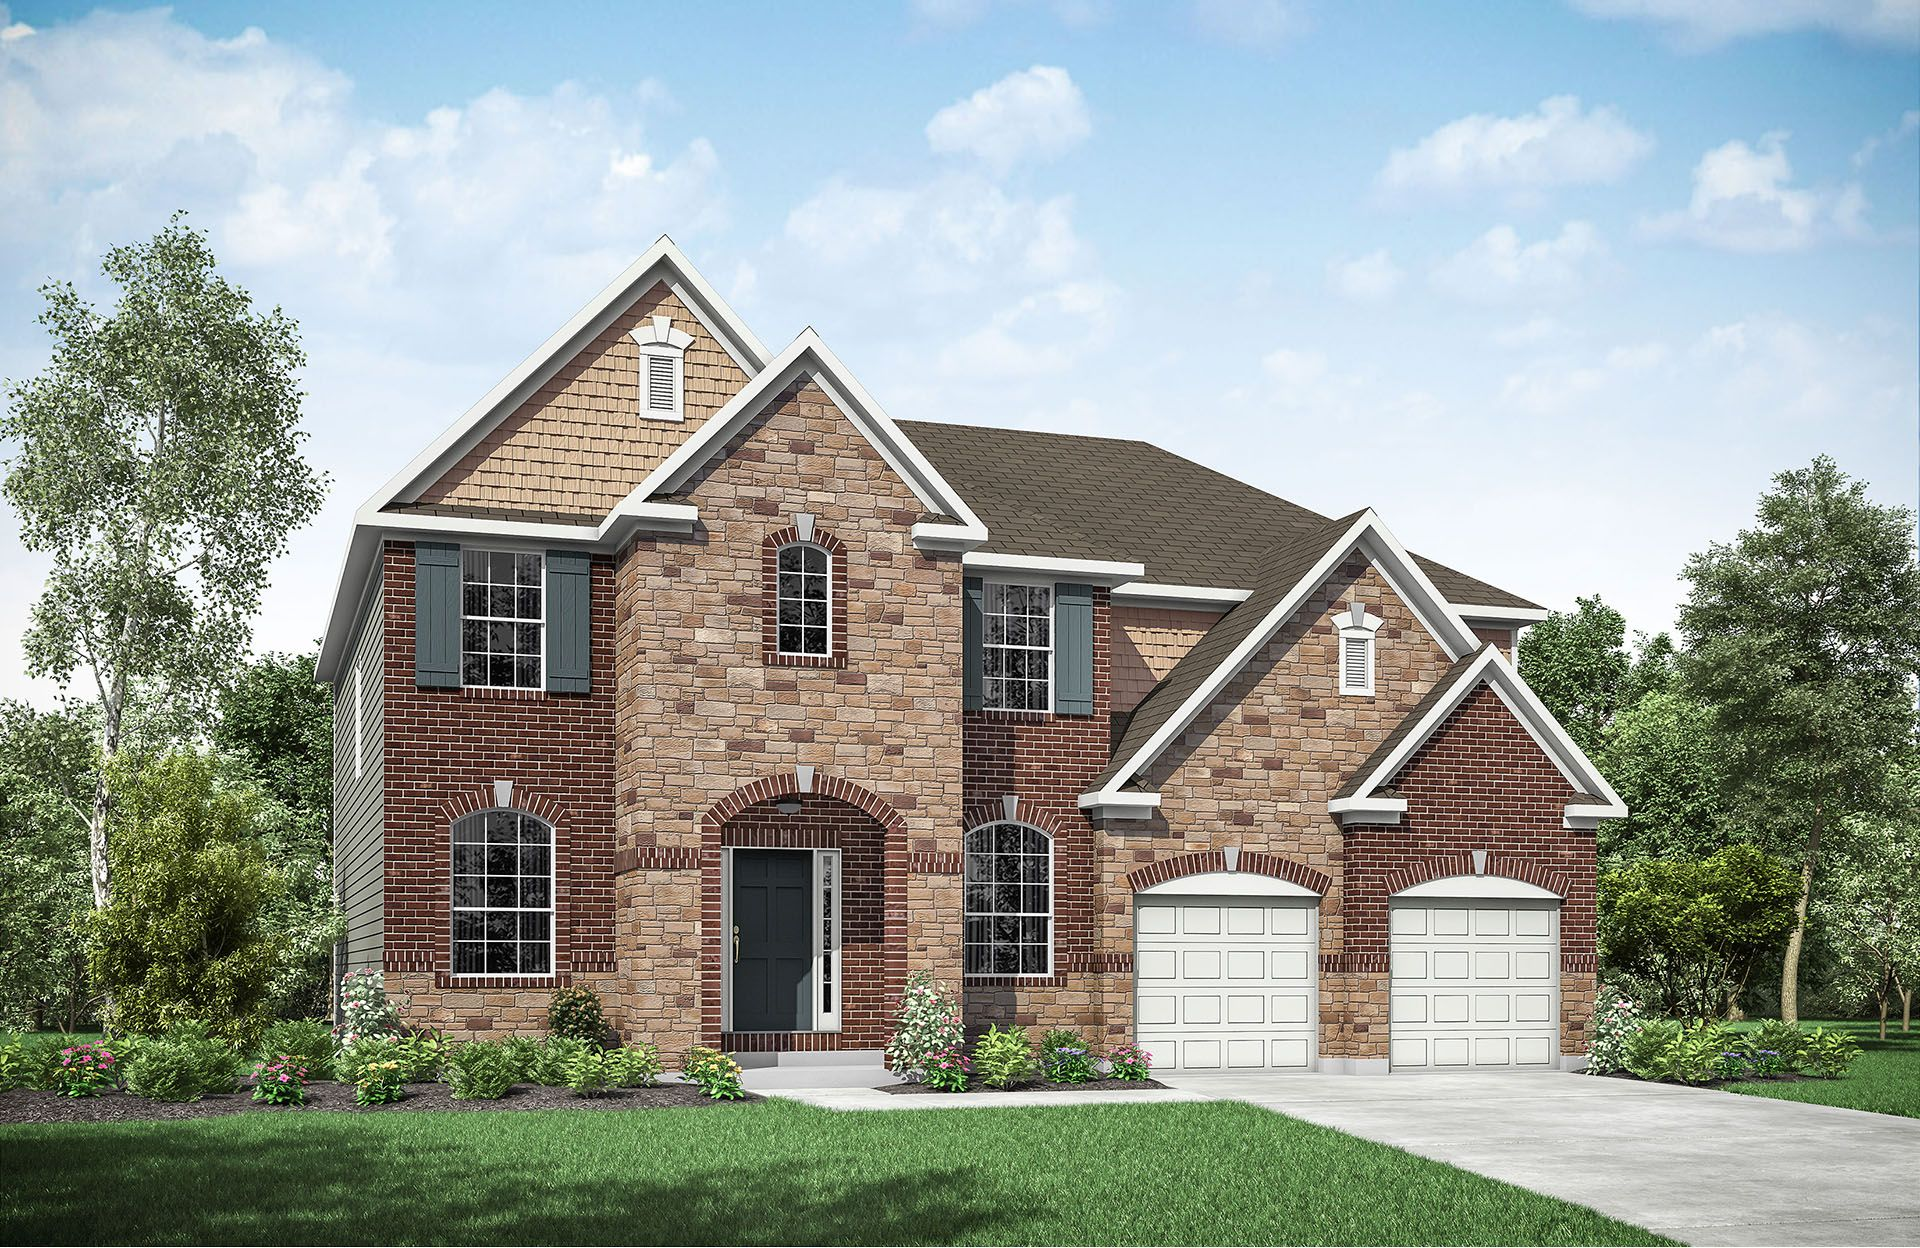 thornwilde in hebron ky new homes floor plans by drees homes more communities by drees homes